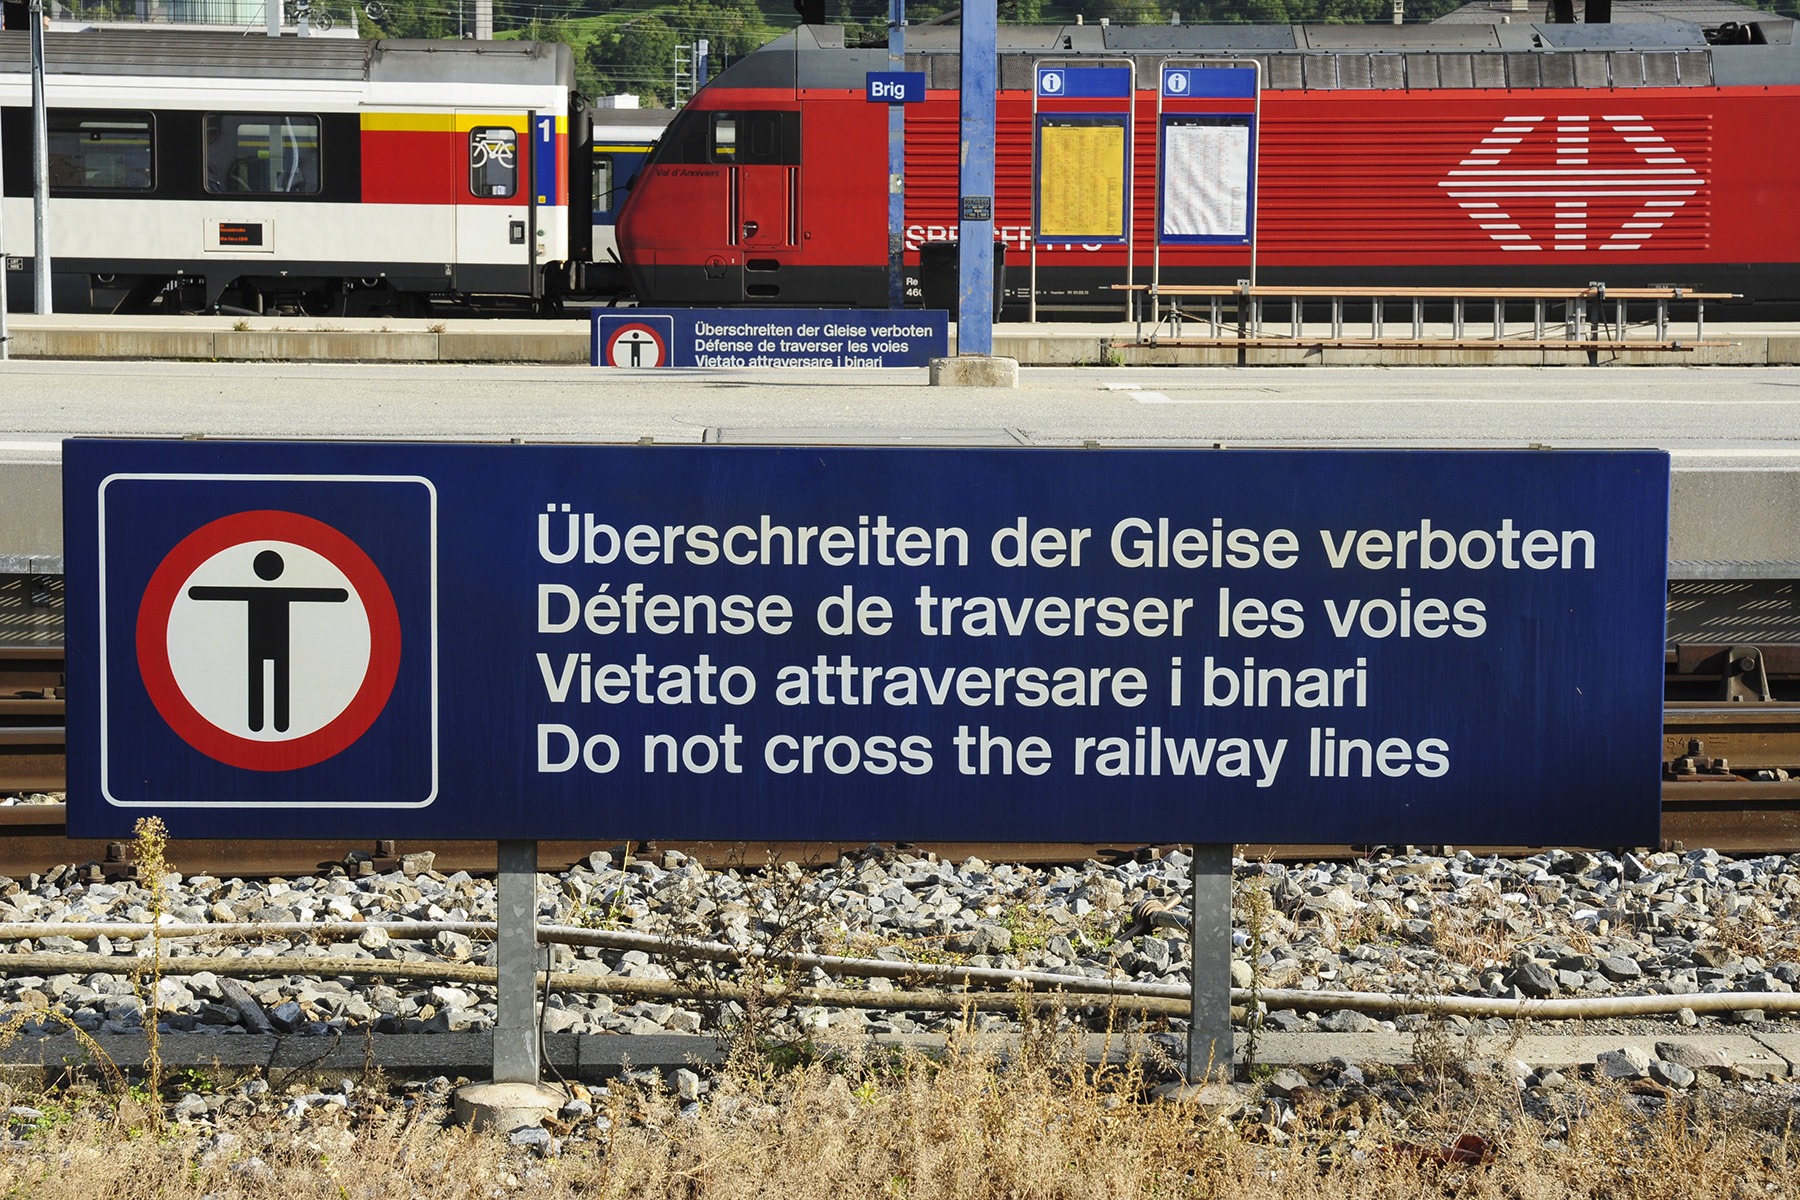 Multilingual sign at a train station